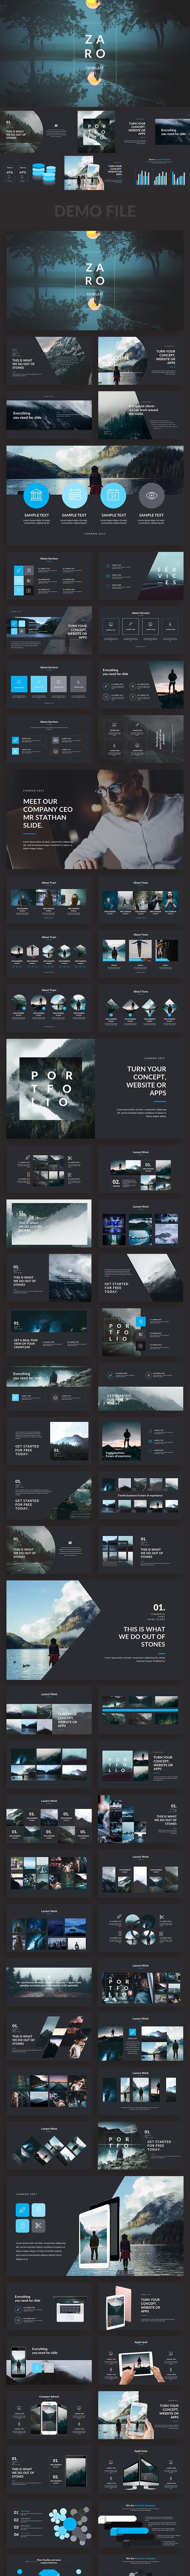 Zaro Premium Powerpoint Template - Creative PowerPoint Templates